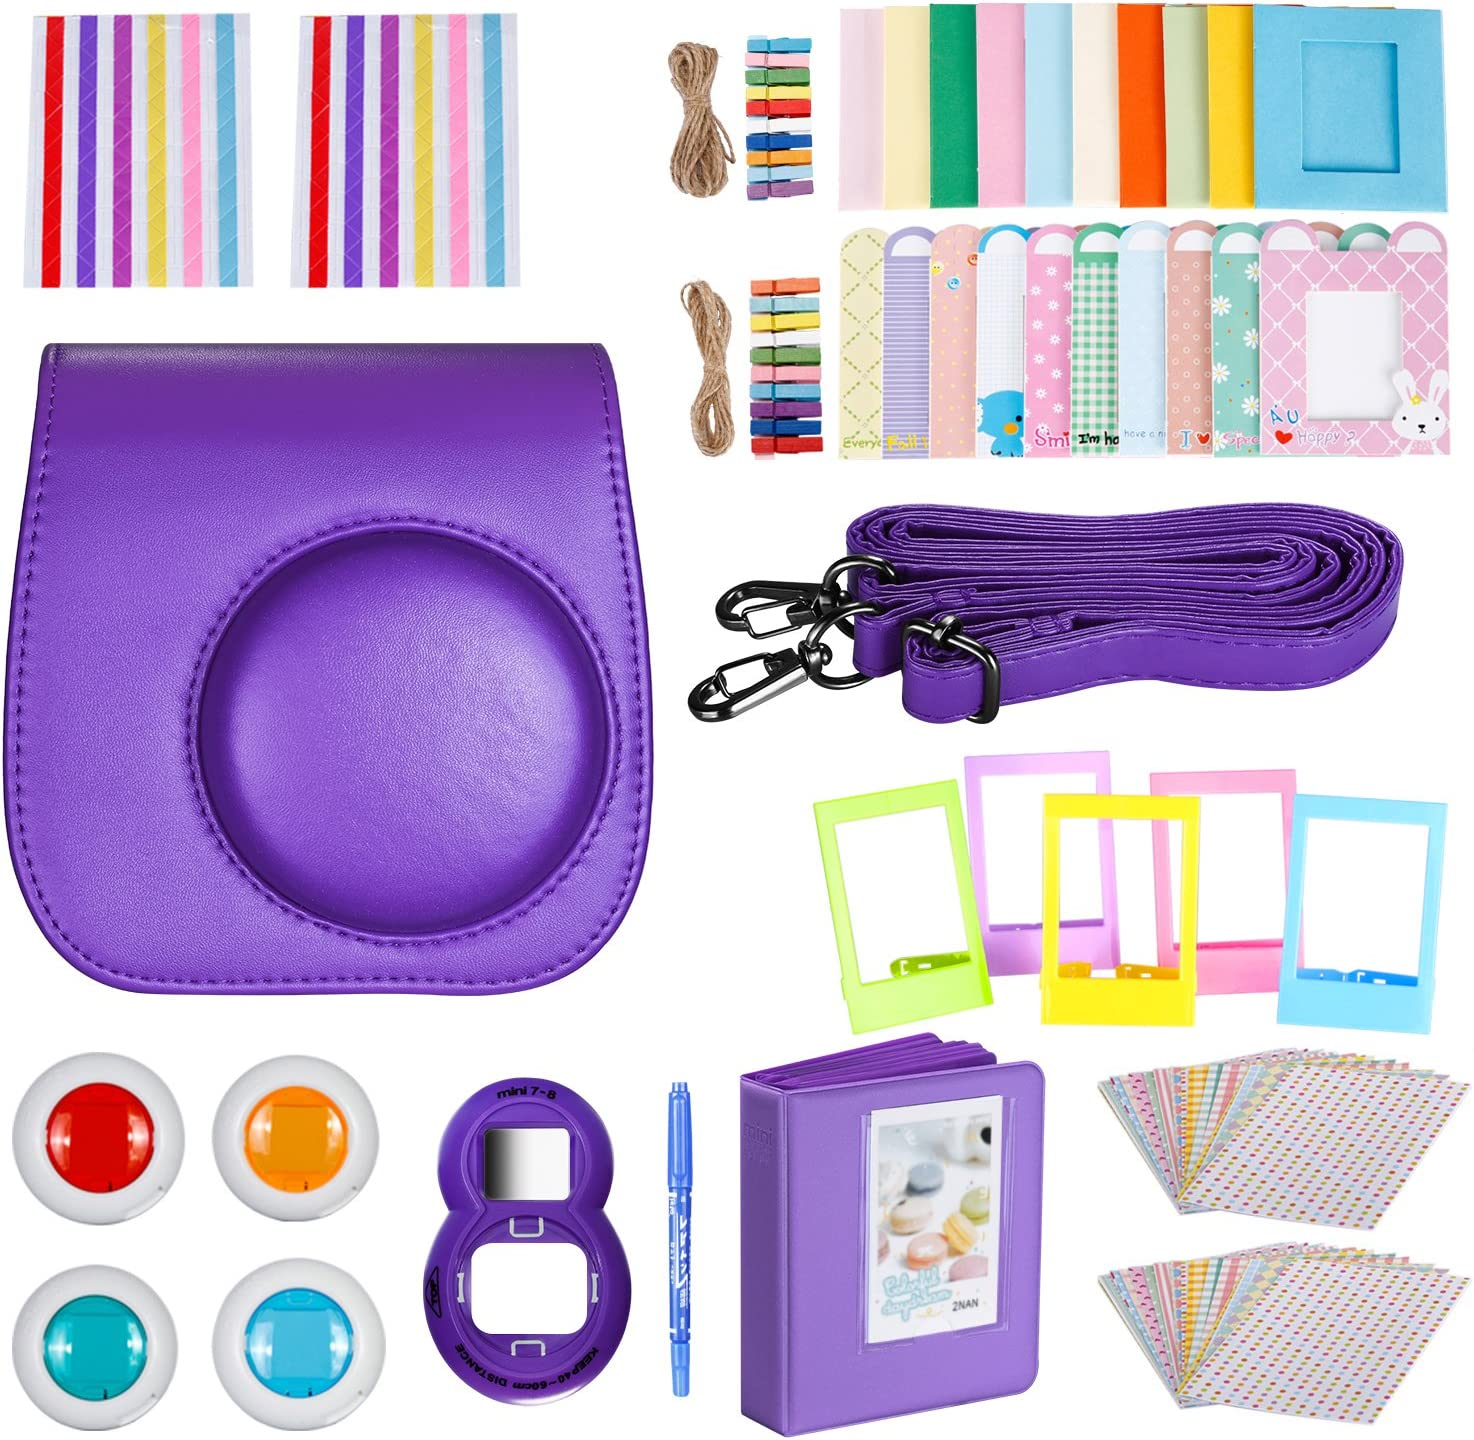 Leebotree Instant Camera Accessories Compatible with Instax Mini 11 Instant Film Camera Include Case//Album//Filters//Wall Hang Frames//Film Frames//Border Stickers//Corner Stickers Lilac Purple